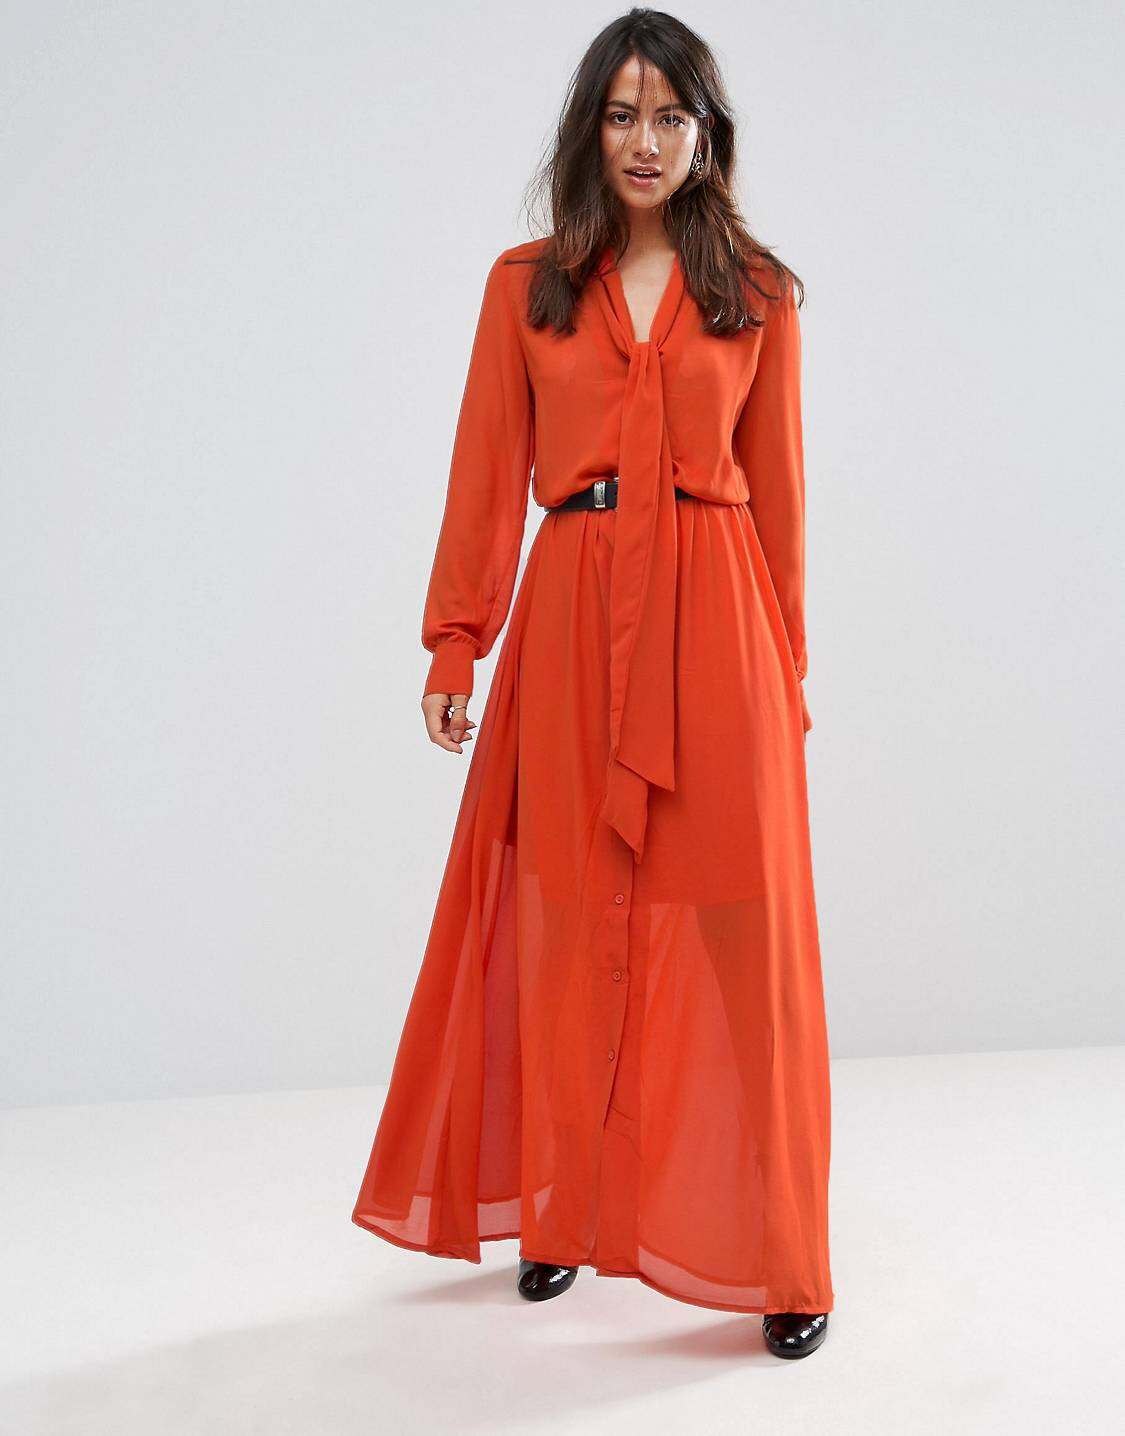 £22 Glamorous Maxi Dress - You really can't have it all mehnn, so you'll need to line this one.